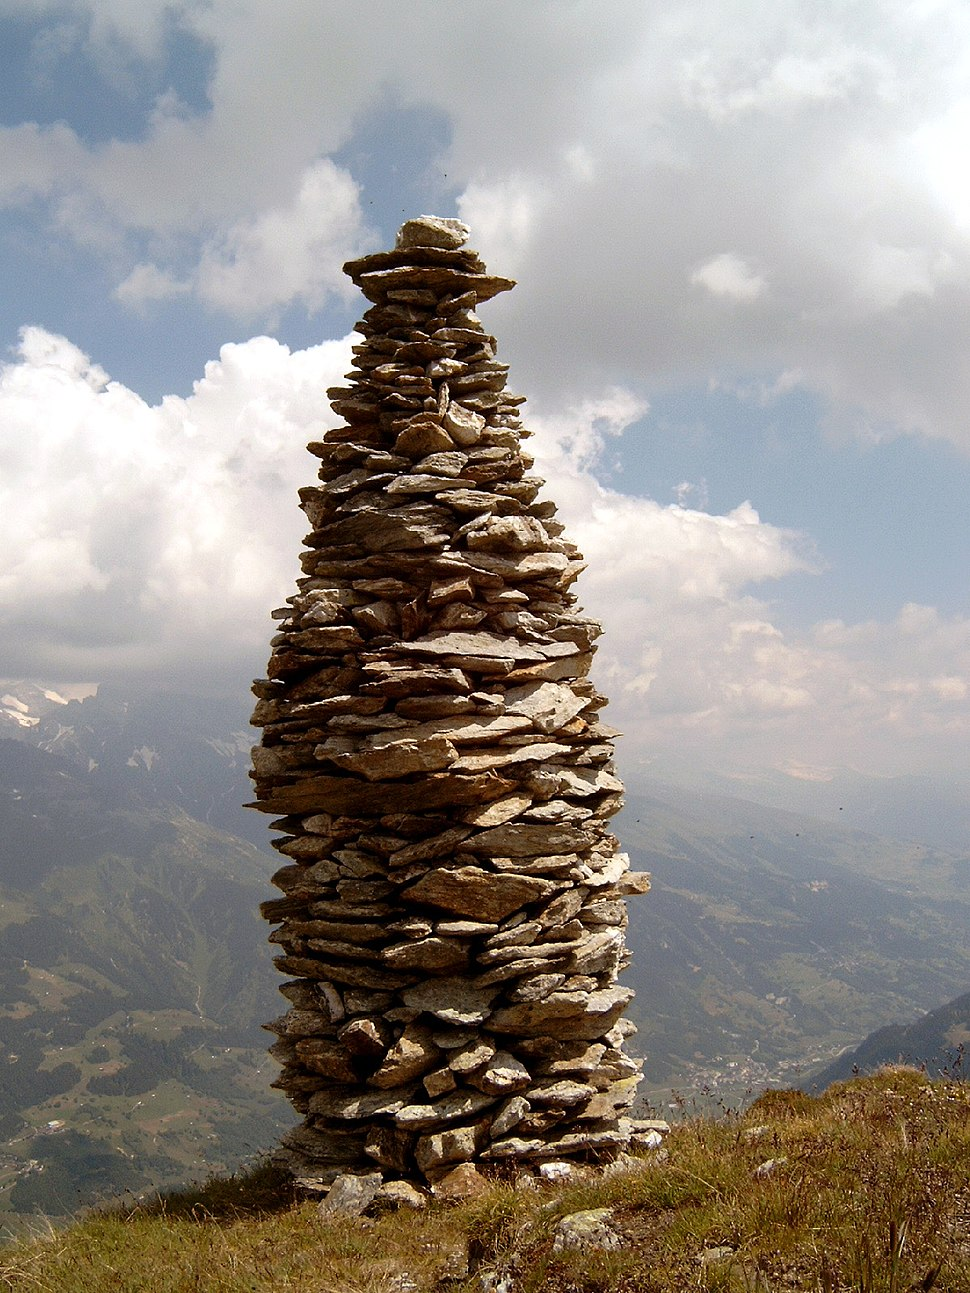 Cairn at Garvera, Surselva, Graubuenden, Switzerland